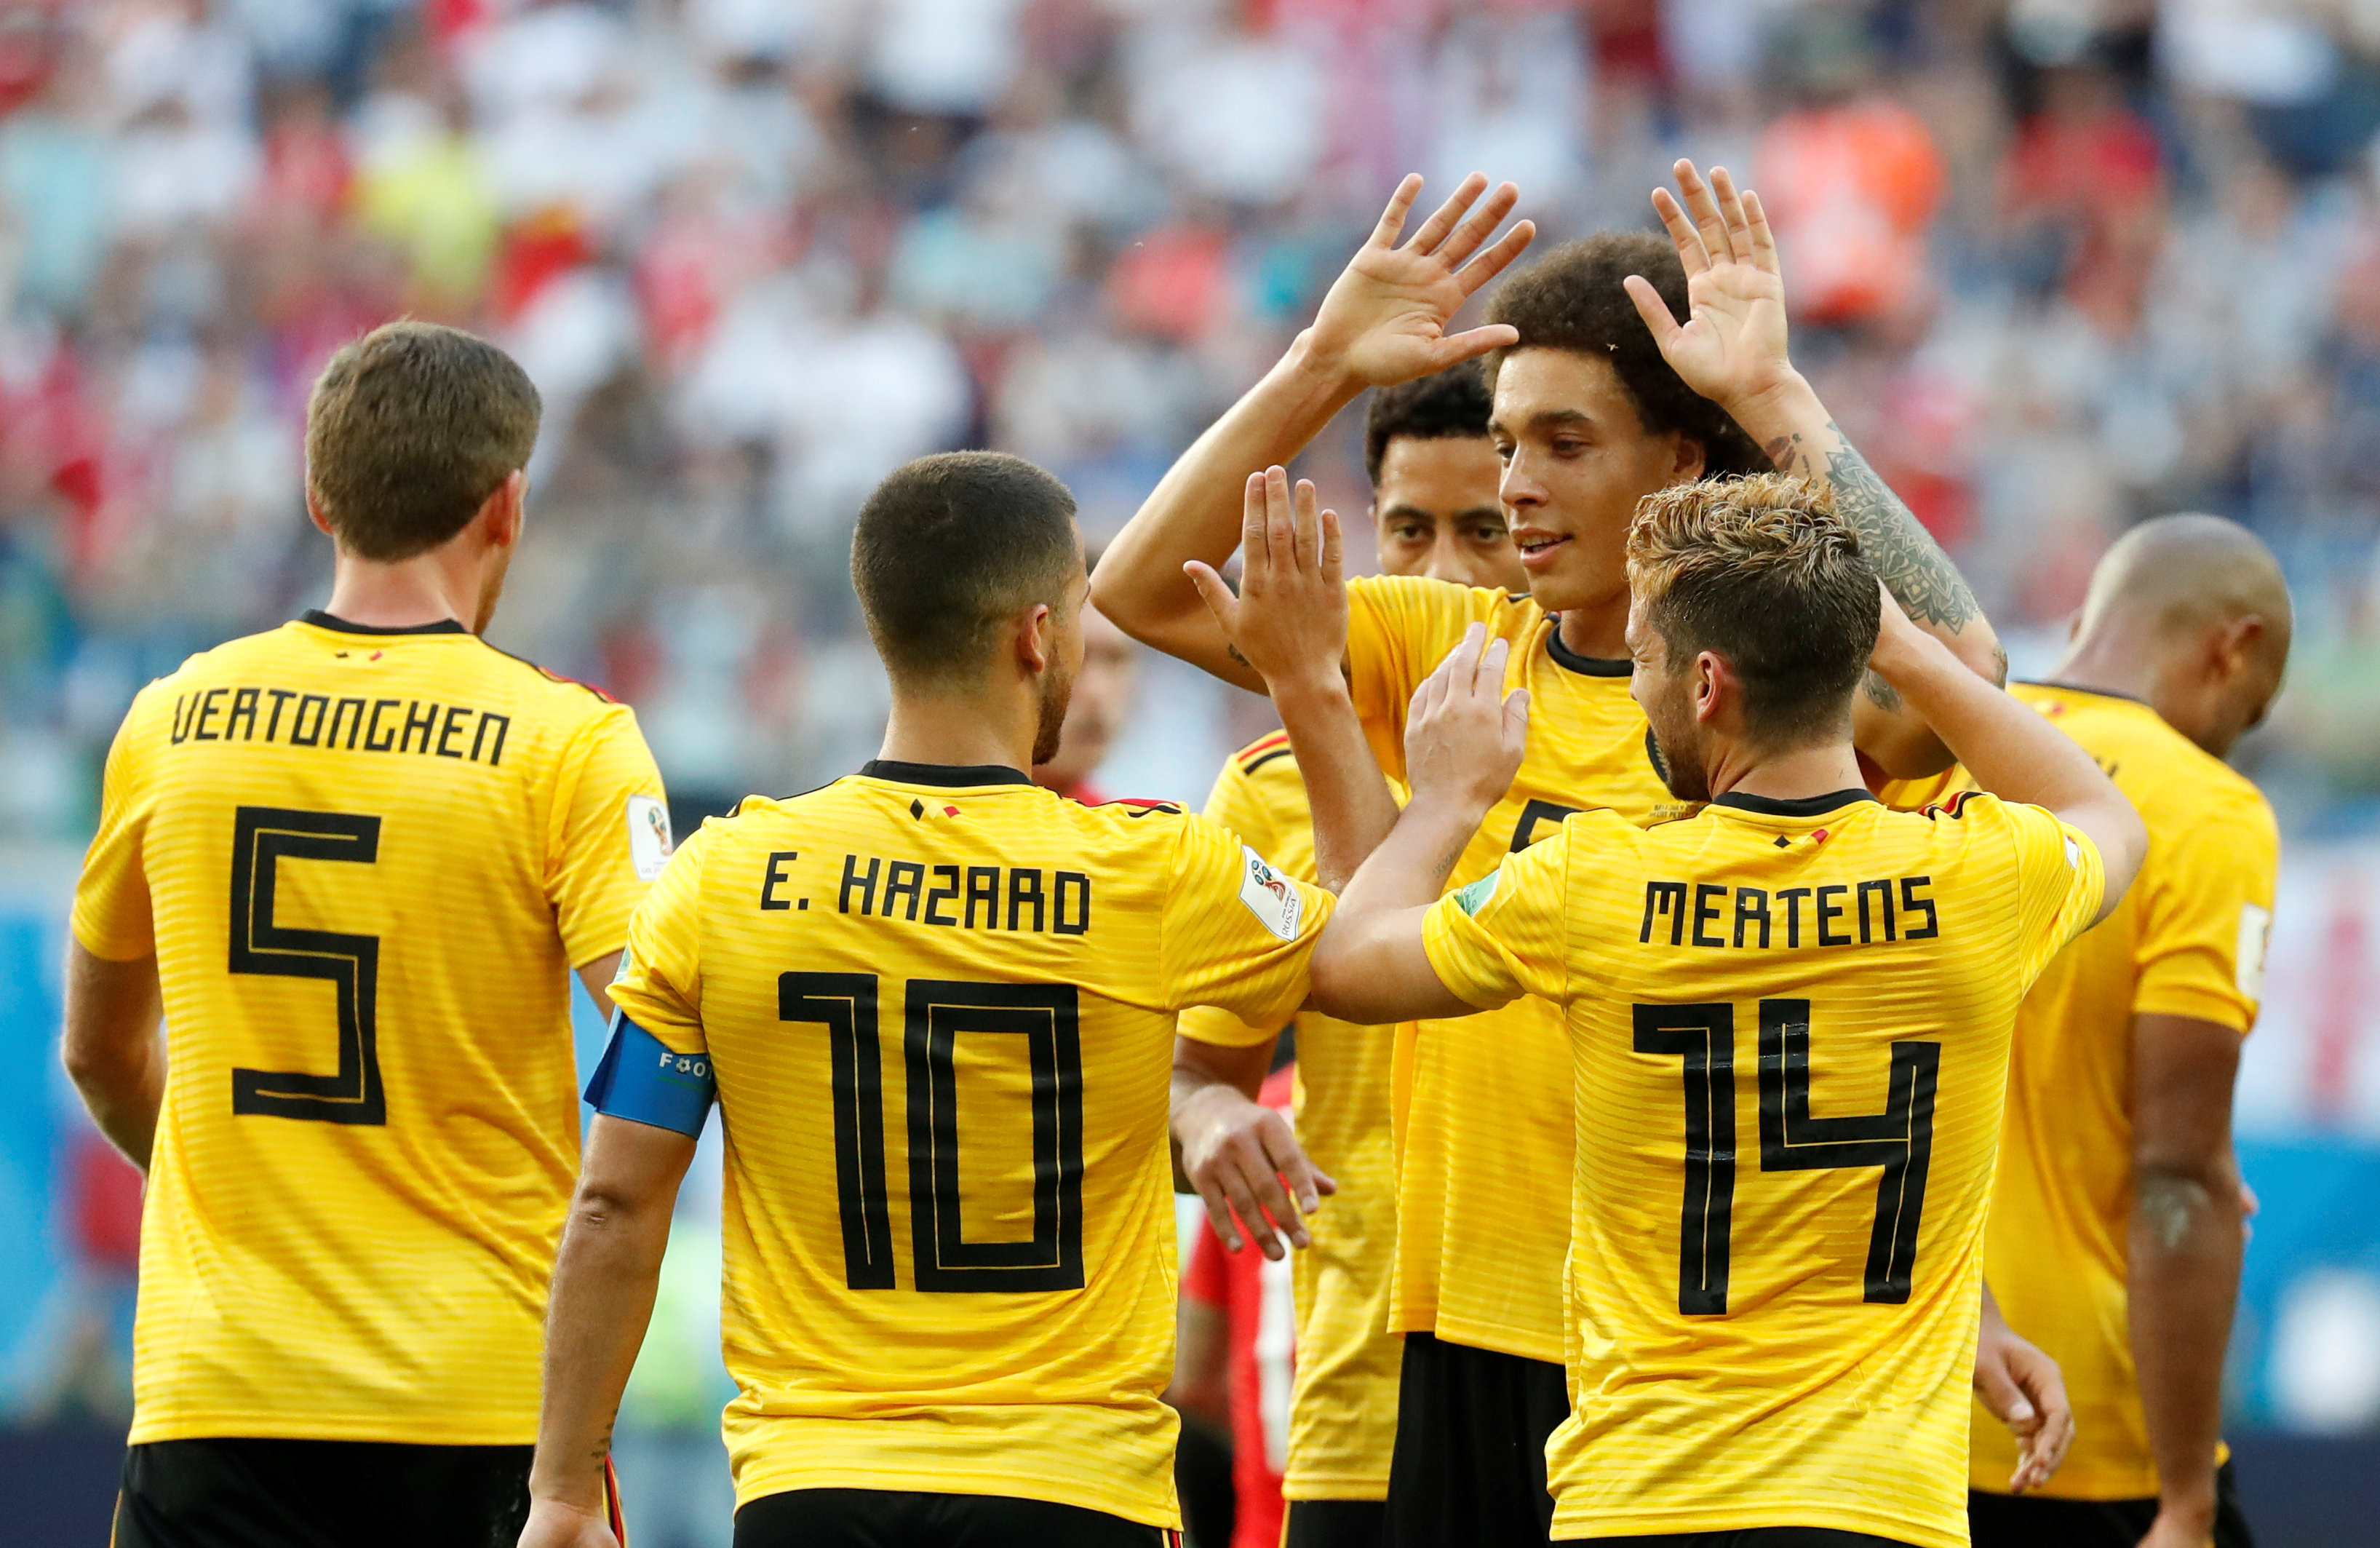 Soccer Football - World Cup - Third Place Play Off - Belgium v England - Saint Petersburg Stadium, Saint Petersburg, Russia - July 14, 2018  Belgium's Eden Hazard celebrates scoring their second goal with Axel Witsel and Dries Mertens    Photo: REUTERS